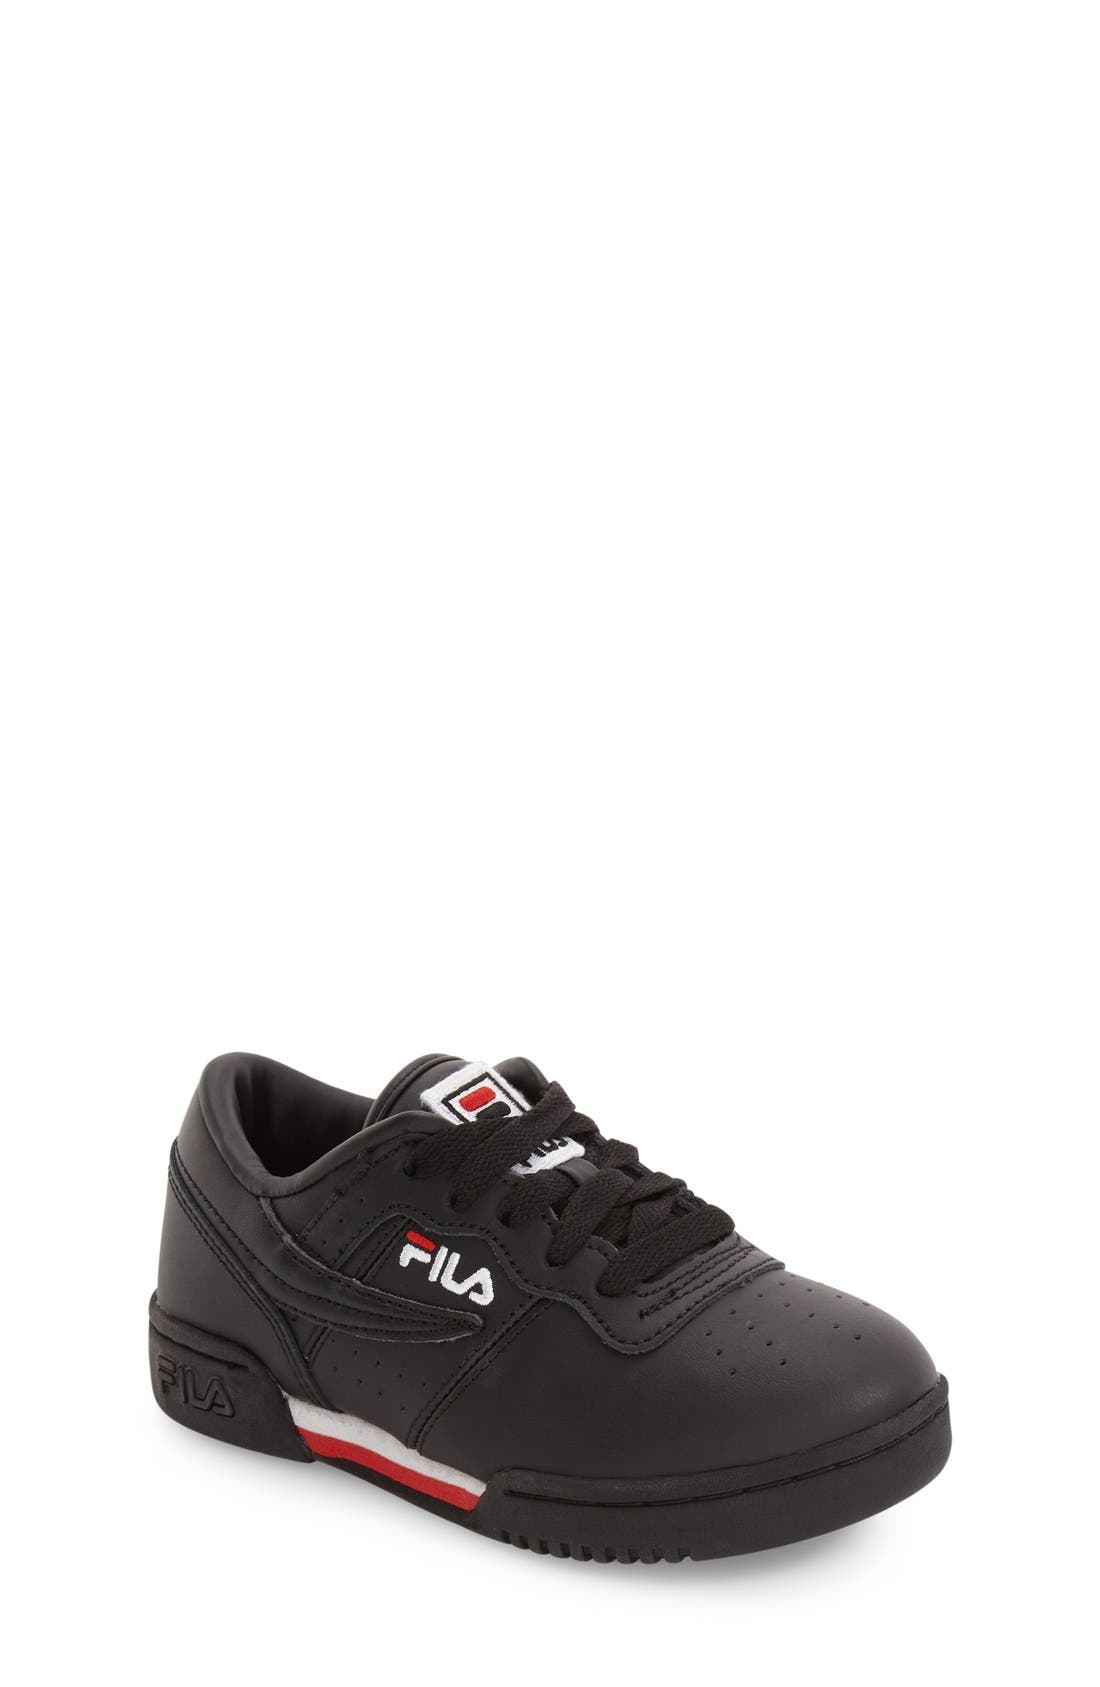 Alternate Image 1 Selected - FILA Original Sneaker (Toddler, Little Kid & Big Kid)